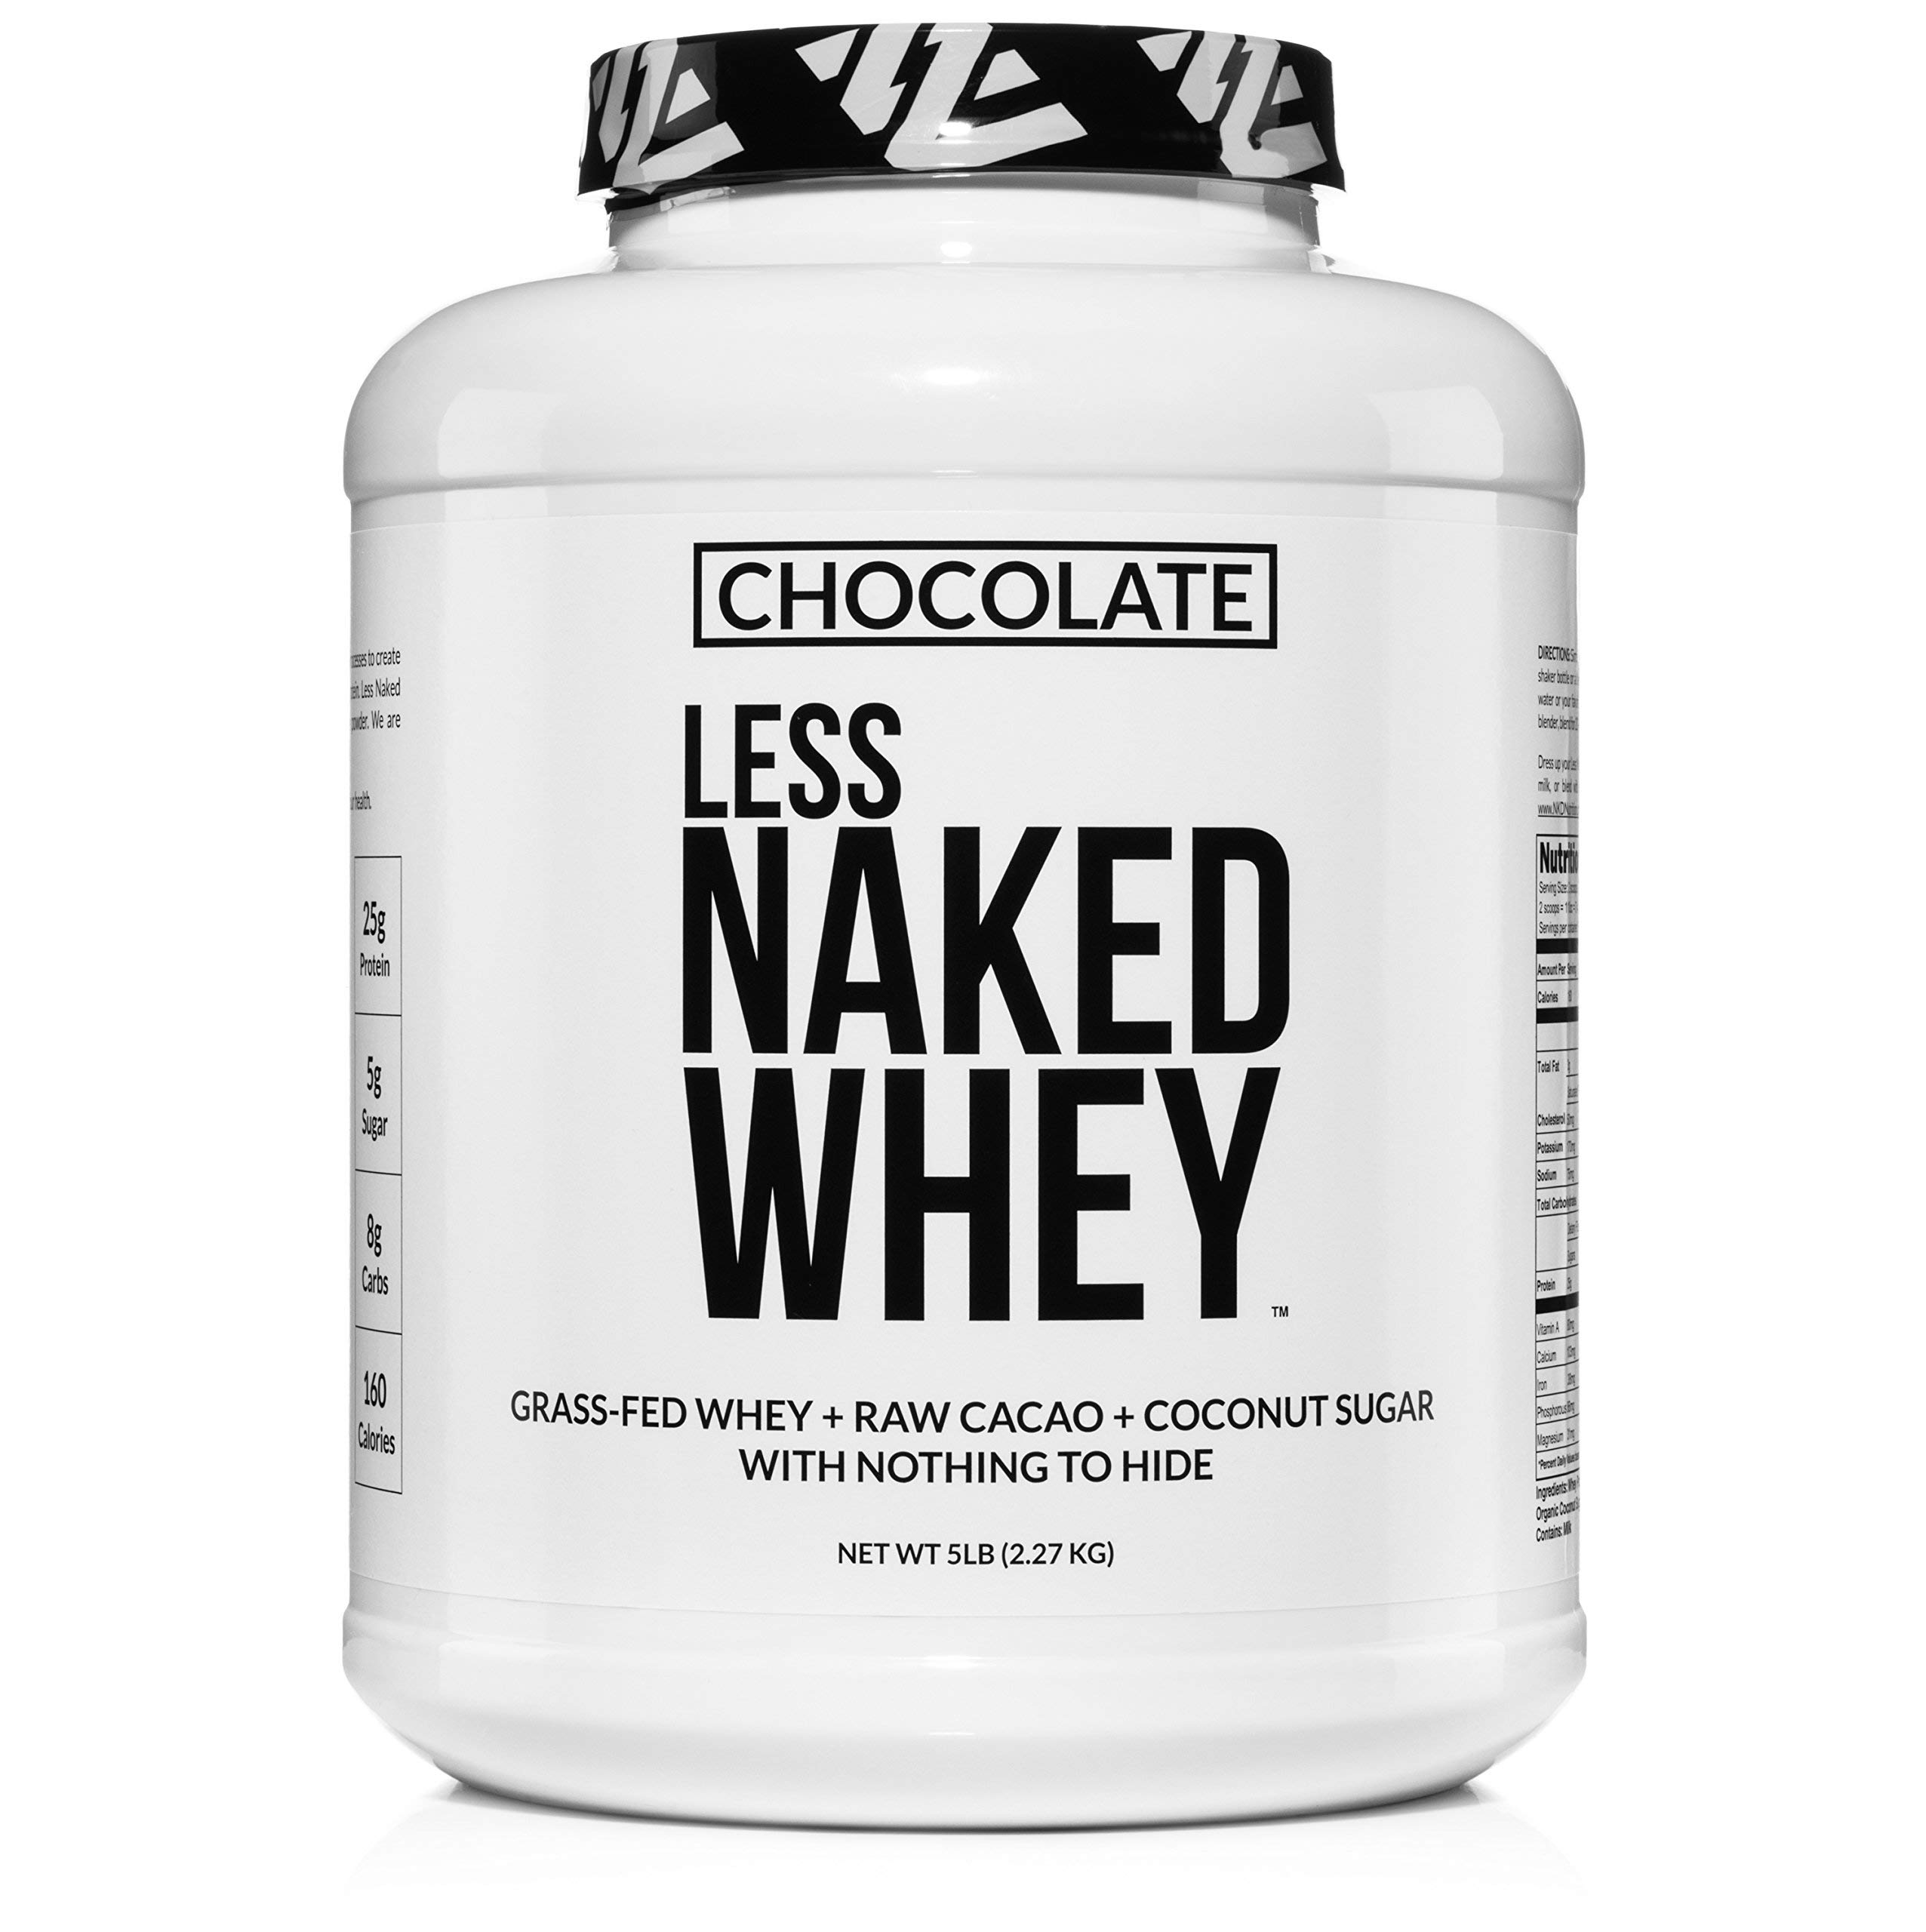 Less Naked Whey Chocolate Protein - All Natural Grass Fed Whey Protein Powder, Organic Chocolate, and Coconut Sugar 5lb Bulk, GMO Free, Soy Free, Gluten Free Aid Muscle Growth and Recovery 60 Servings by NAKED nutrition